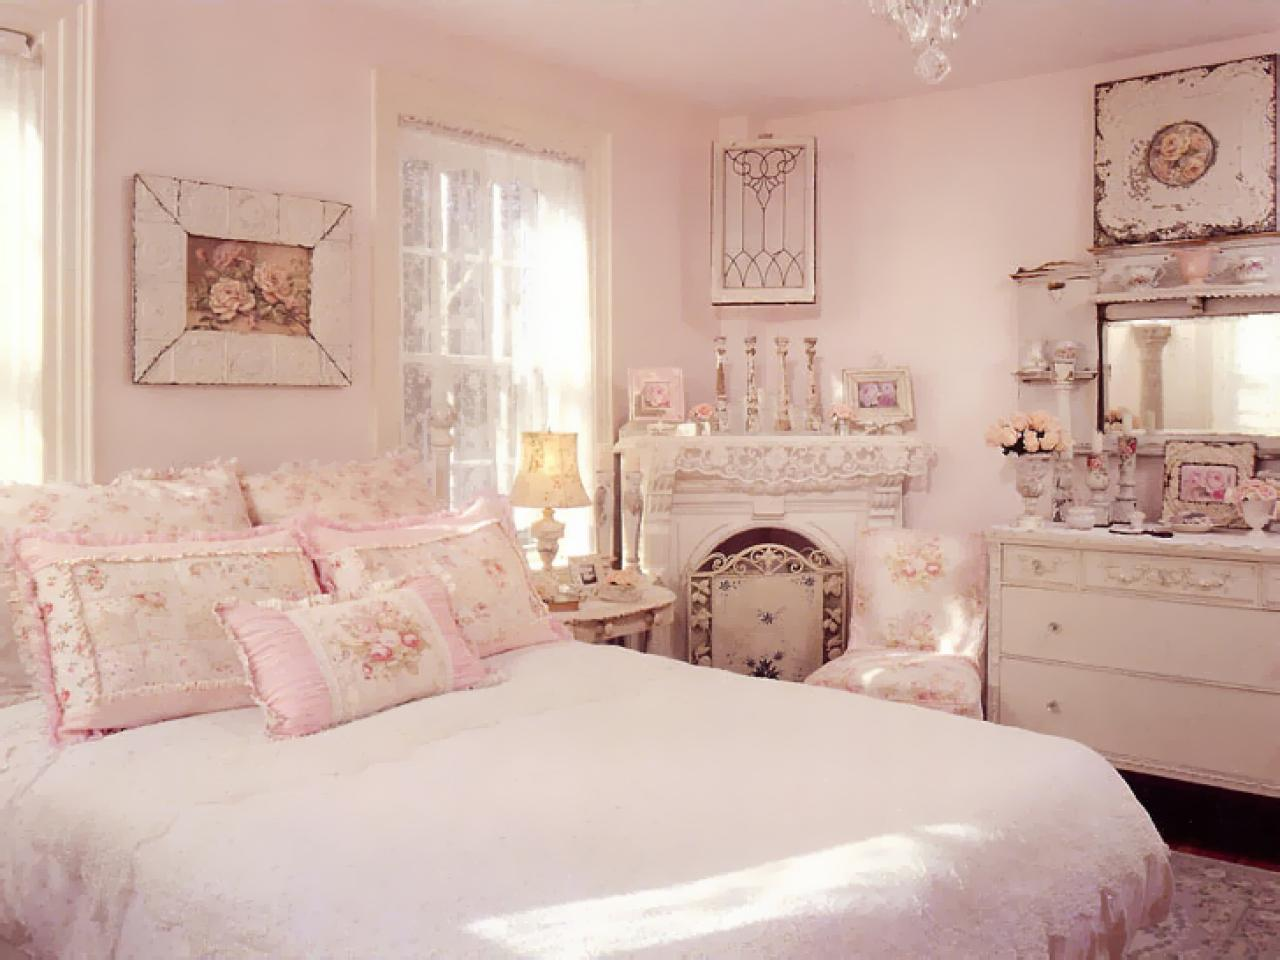 rms vintagerosecollection shabby chic pink bedroom feminine floral s4x3.jpg.rend .hgtvcom.1280.960 - Комната для девушки - идеи интерьера